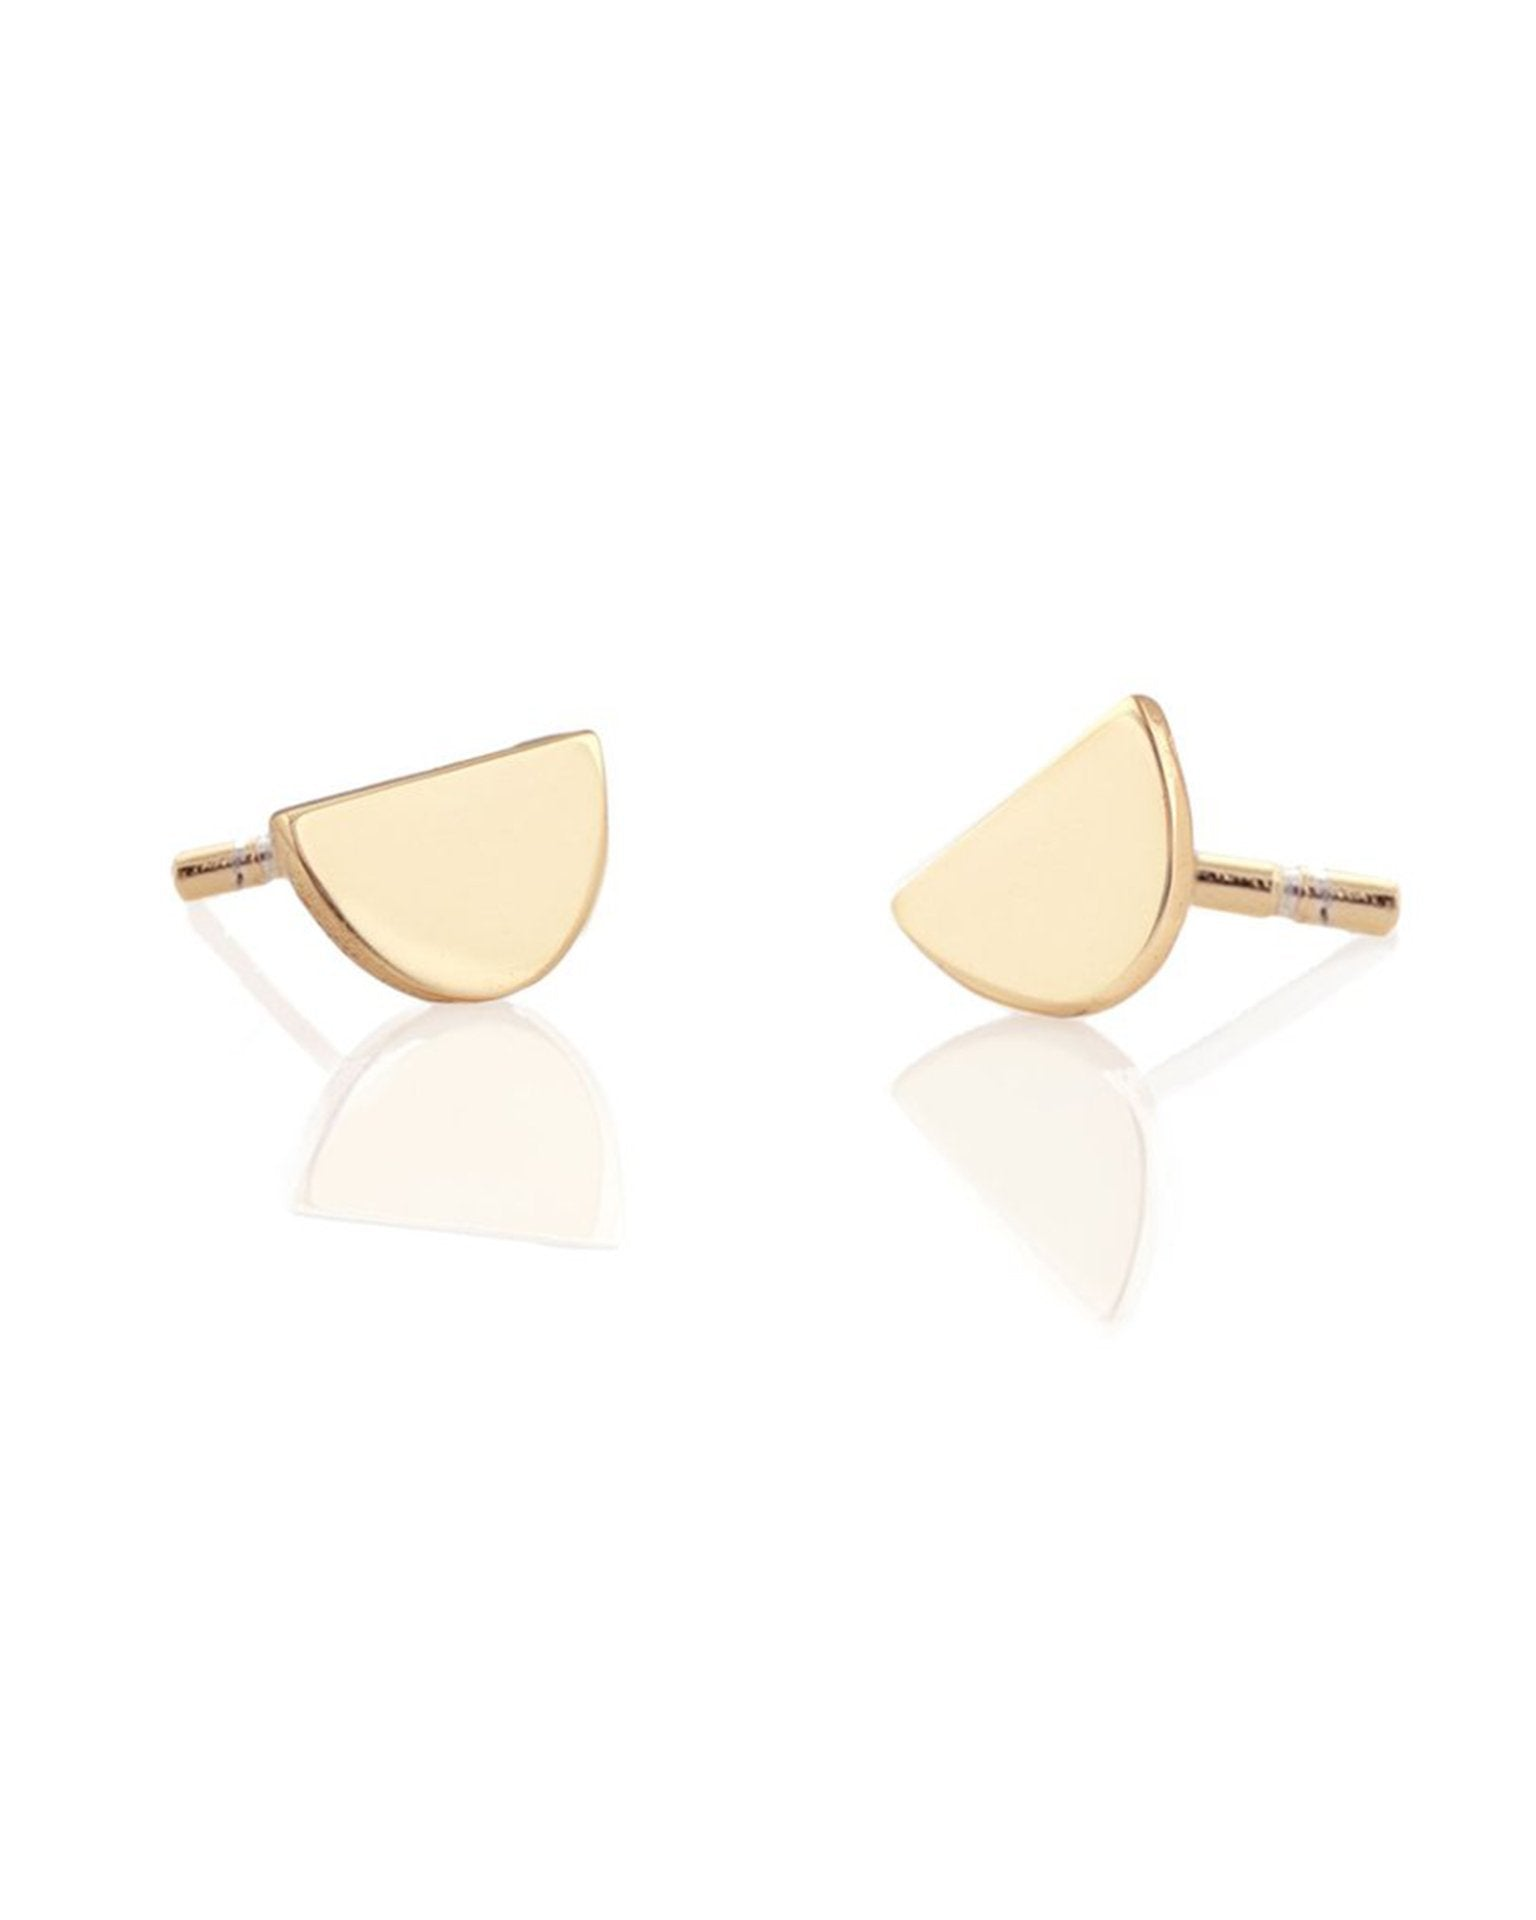 Kris Nations Jewelry 18K Gold Vermeil / O/S Half Moon Studs